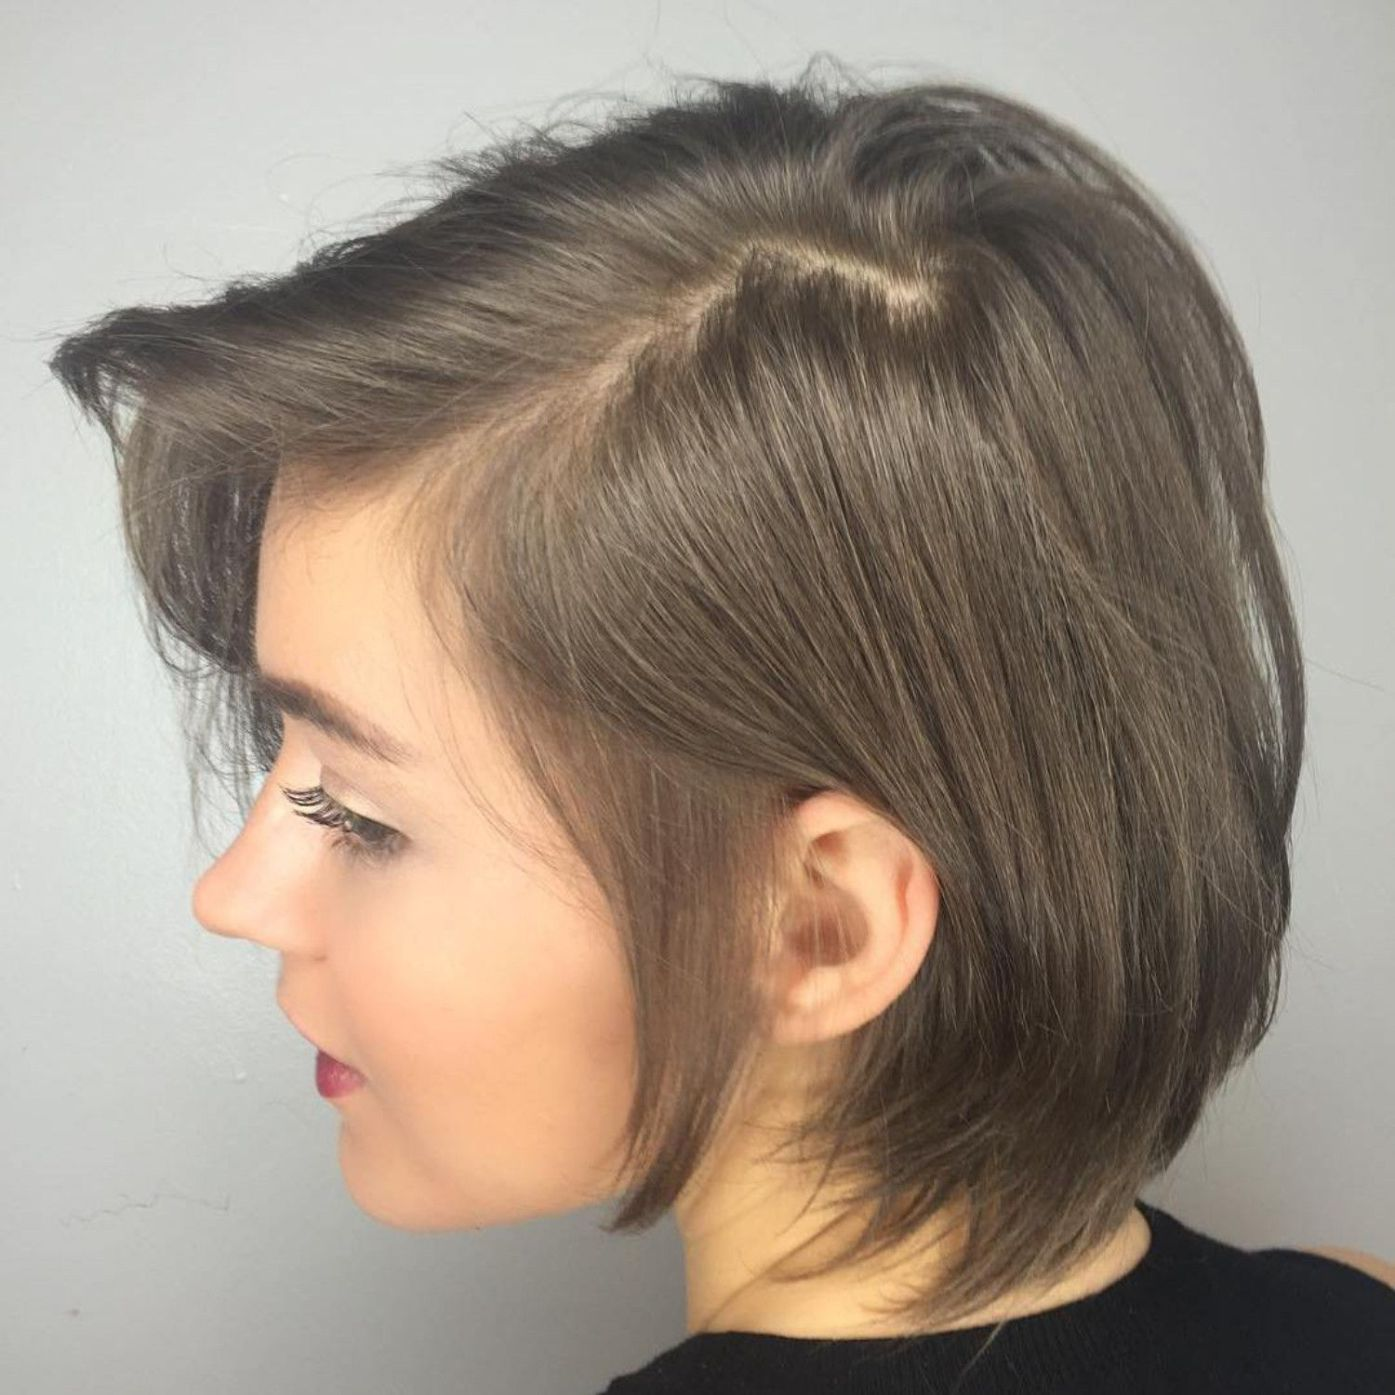 mindblowing short hairstyles for fine hair in klbailey